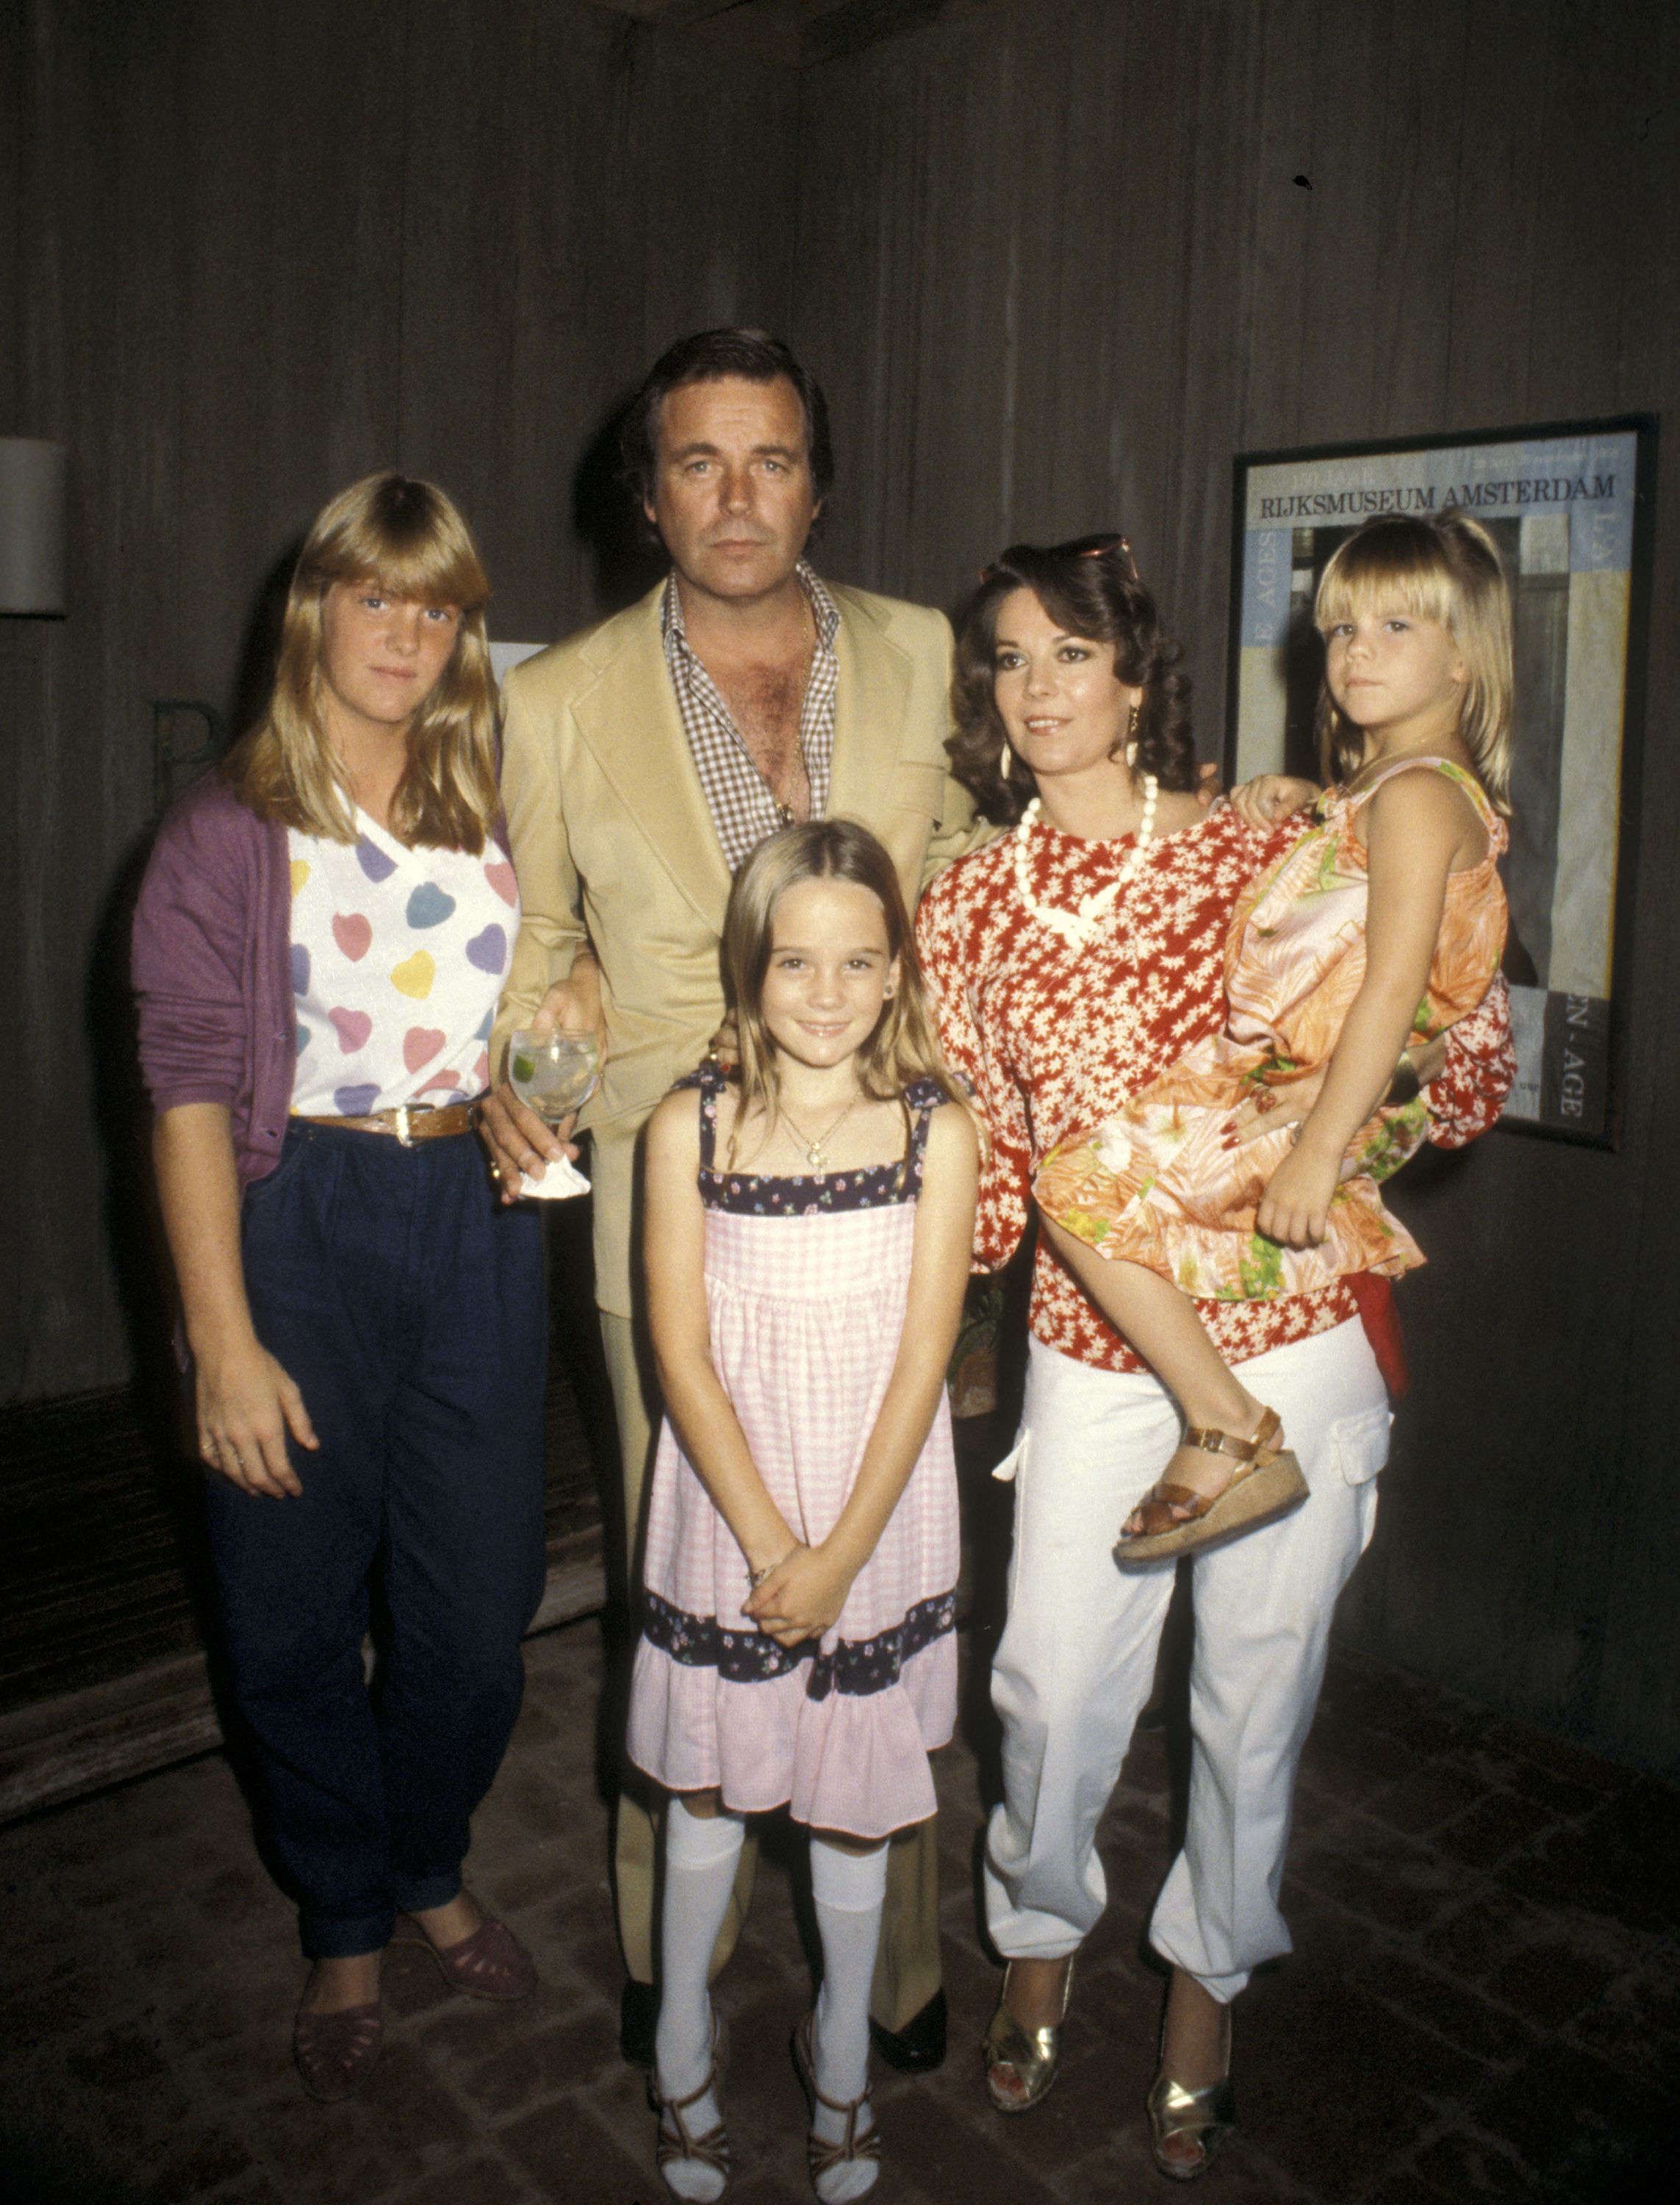 Robert Wagner, Natalie Wood, and daughters Katie Wagner, Natasha Gregson Wagner, and Courtney Wagner in 1980. | Photo: Getty Images